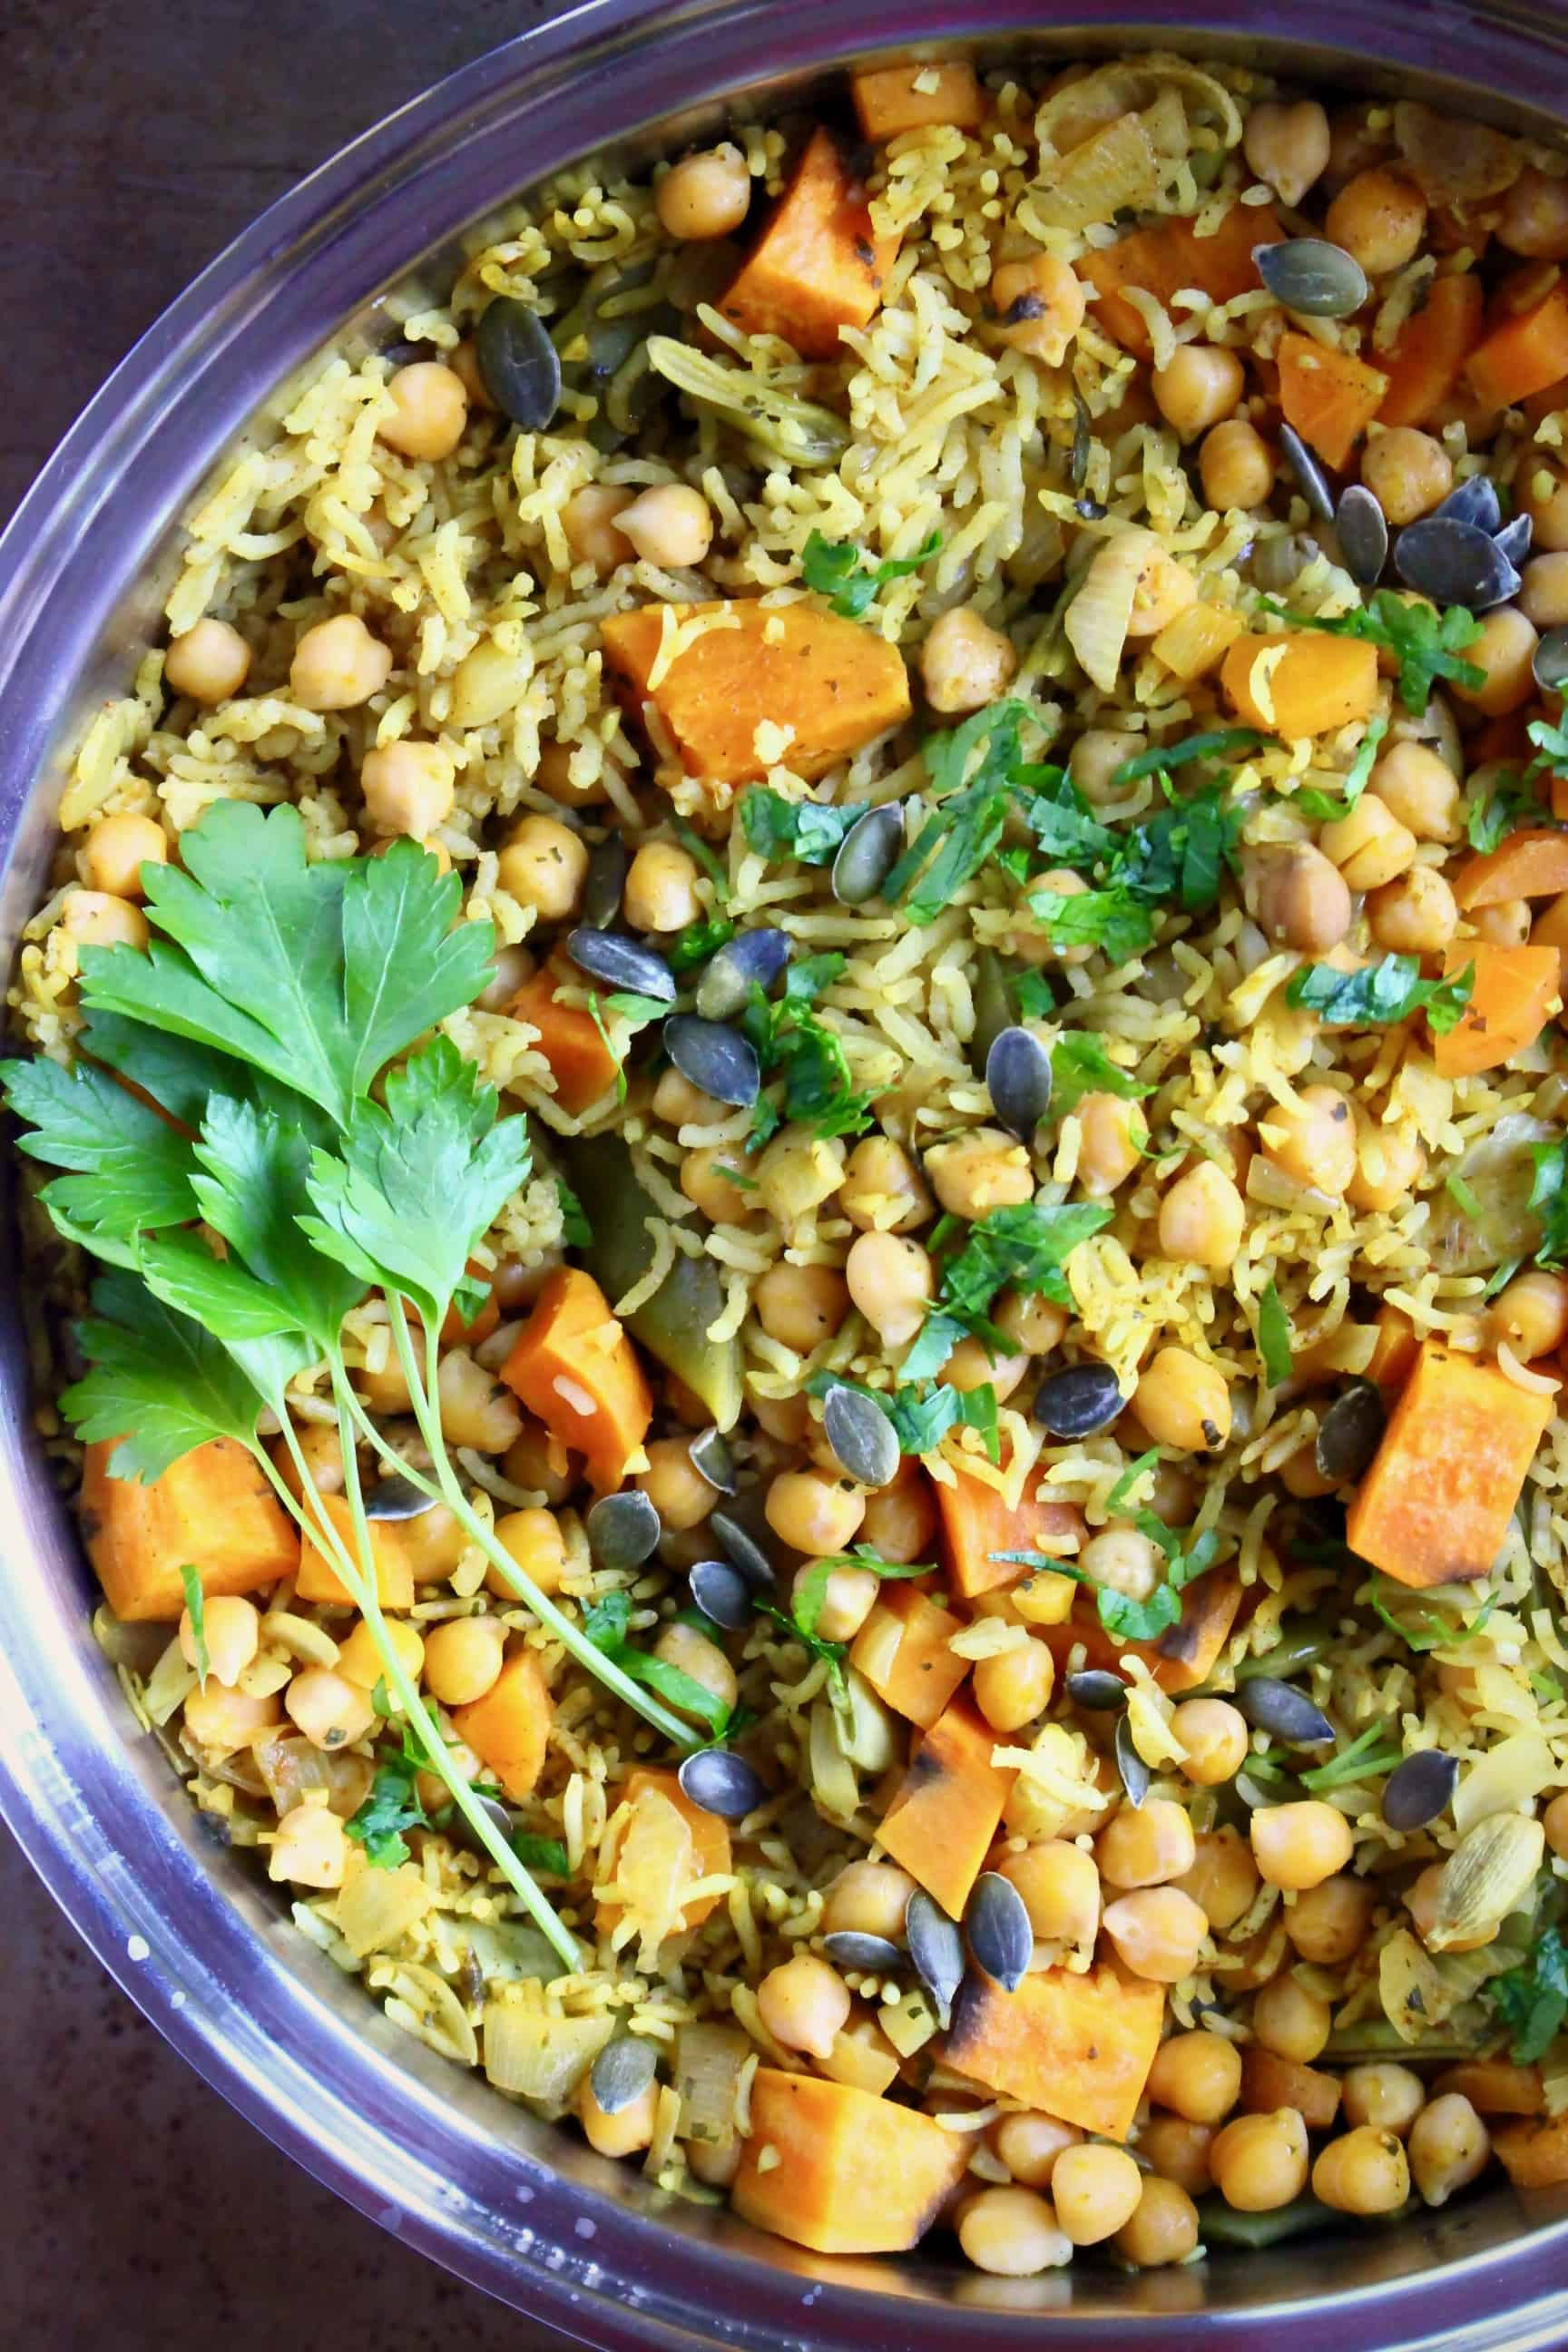 Chickpea pumpkin biryani sprinkled with pumpkin seeds in a silver saucepan